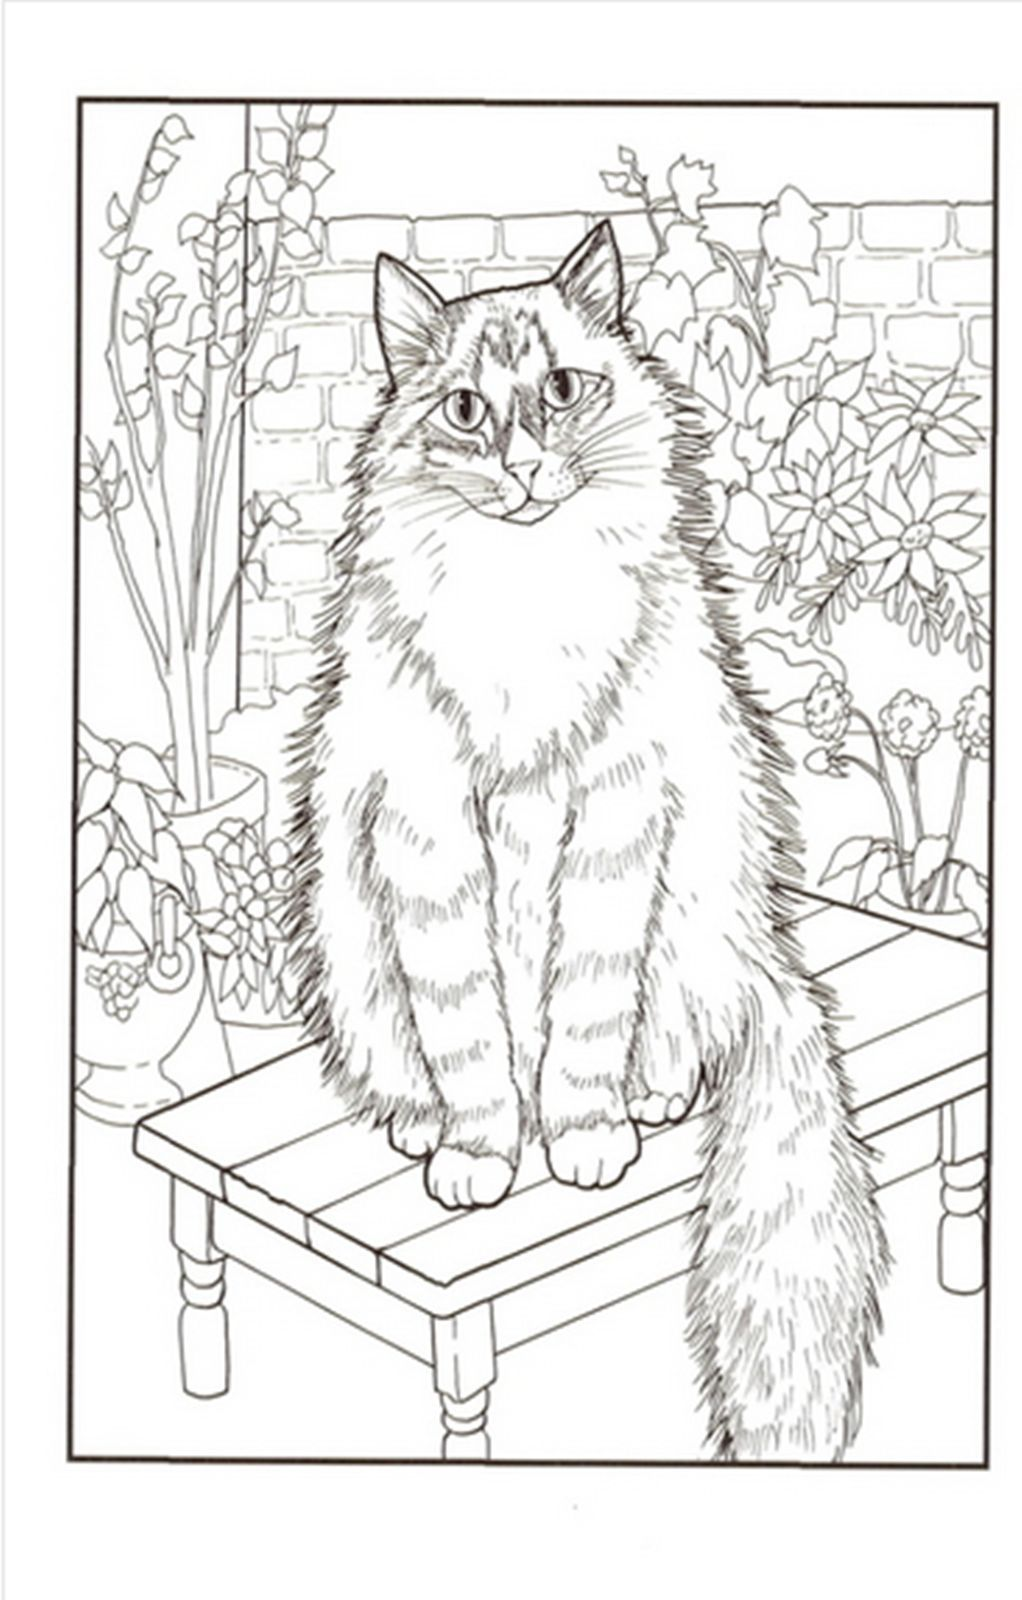 Cats Coloring Book by Mimi Vang Olsen for Adult Anti